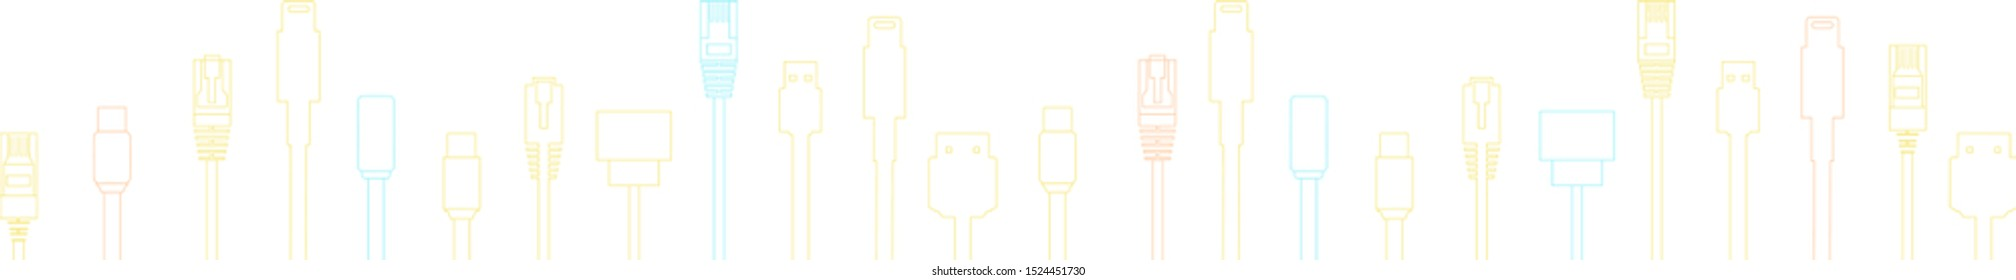 Cables with different plugs like HDMI, USB, ethernet for technology concept